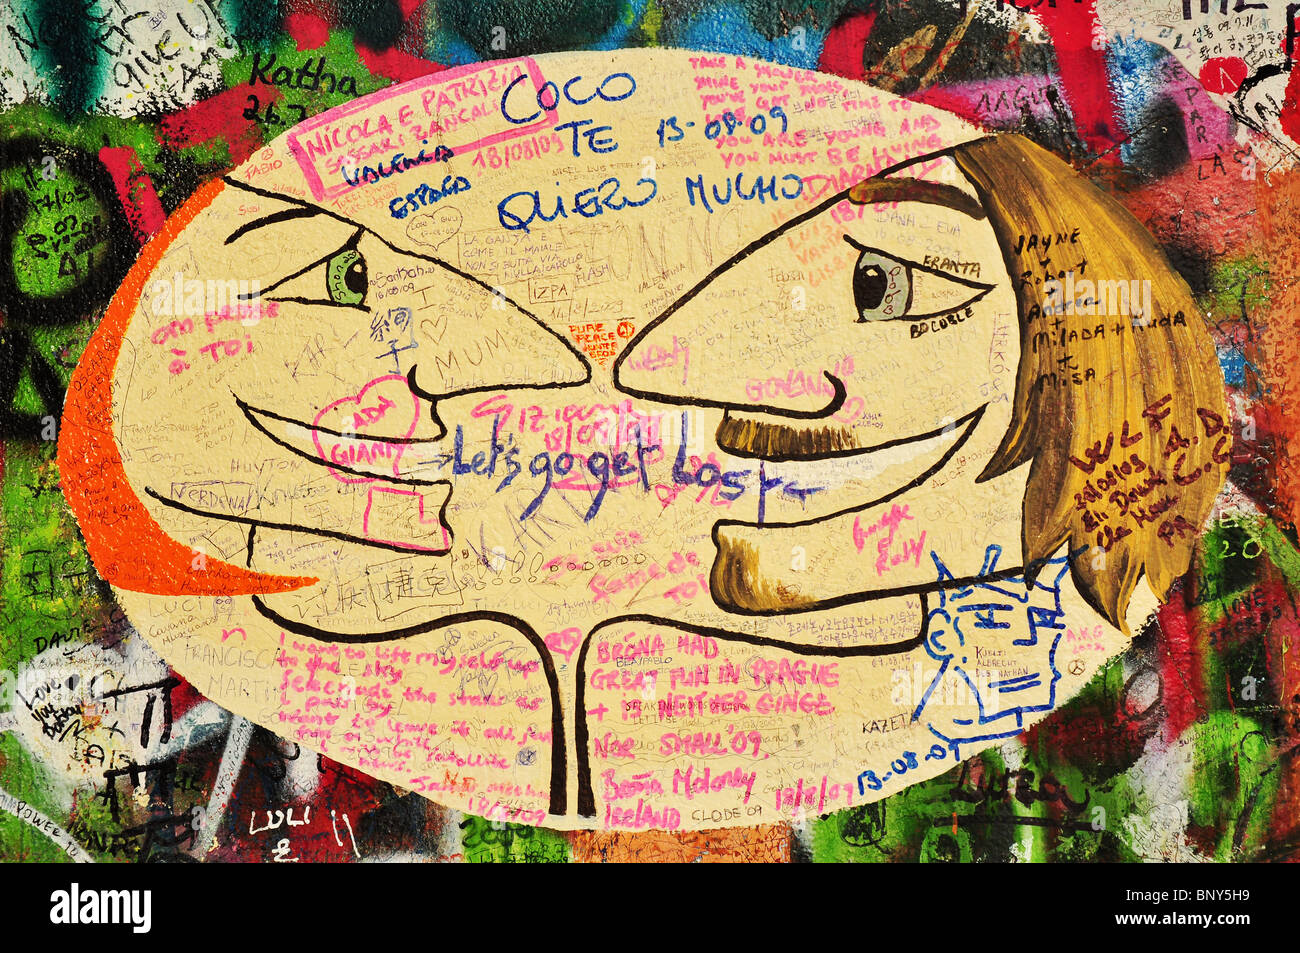 Imagine - Lennon graffiti wall in Prague Stock Photo: 30715253 - Alamy